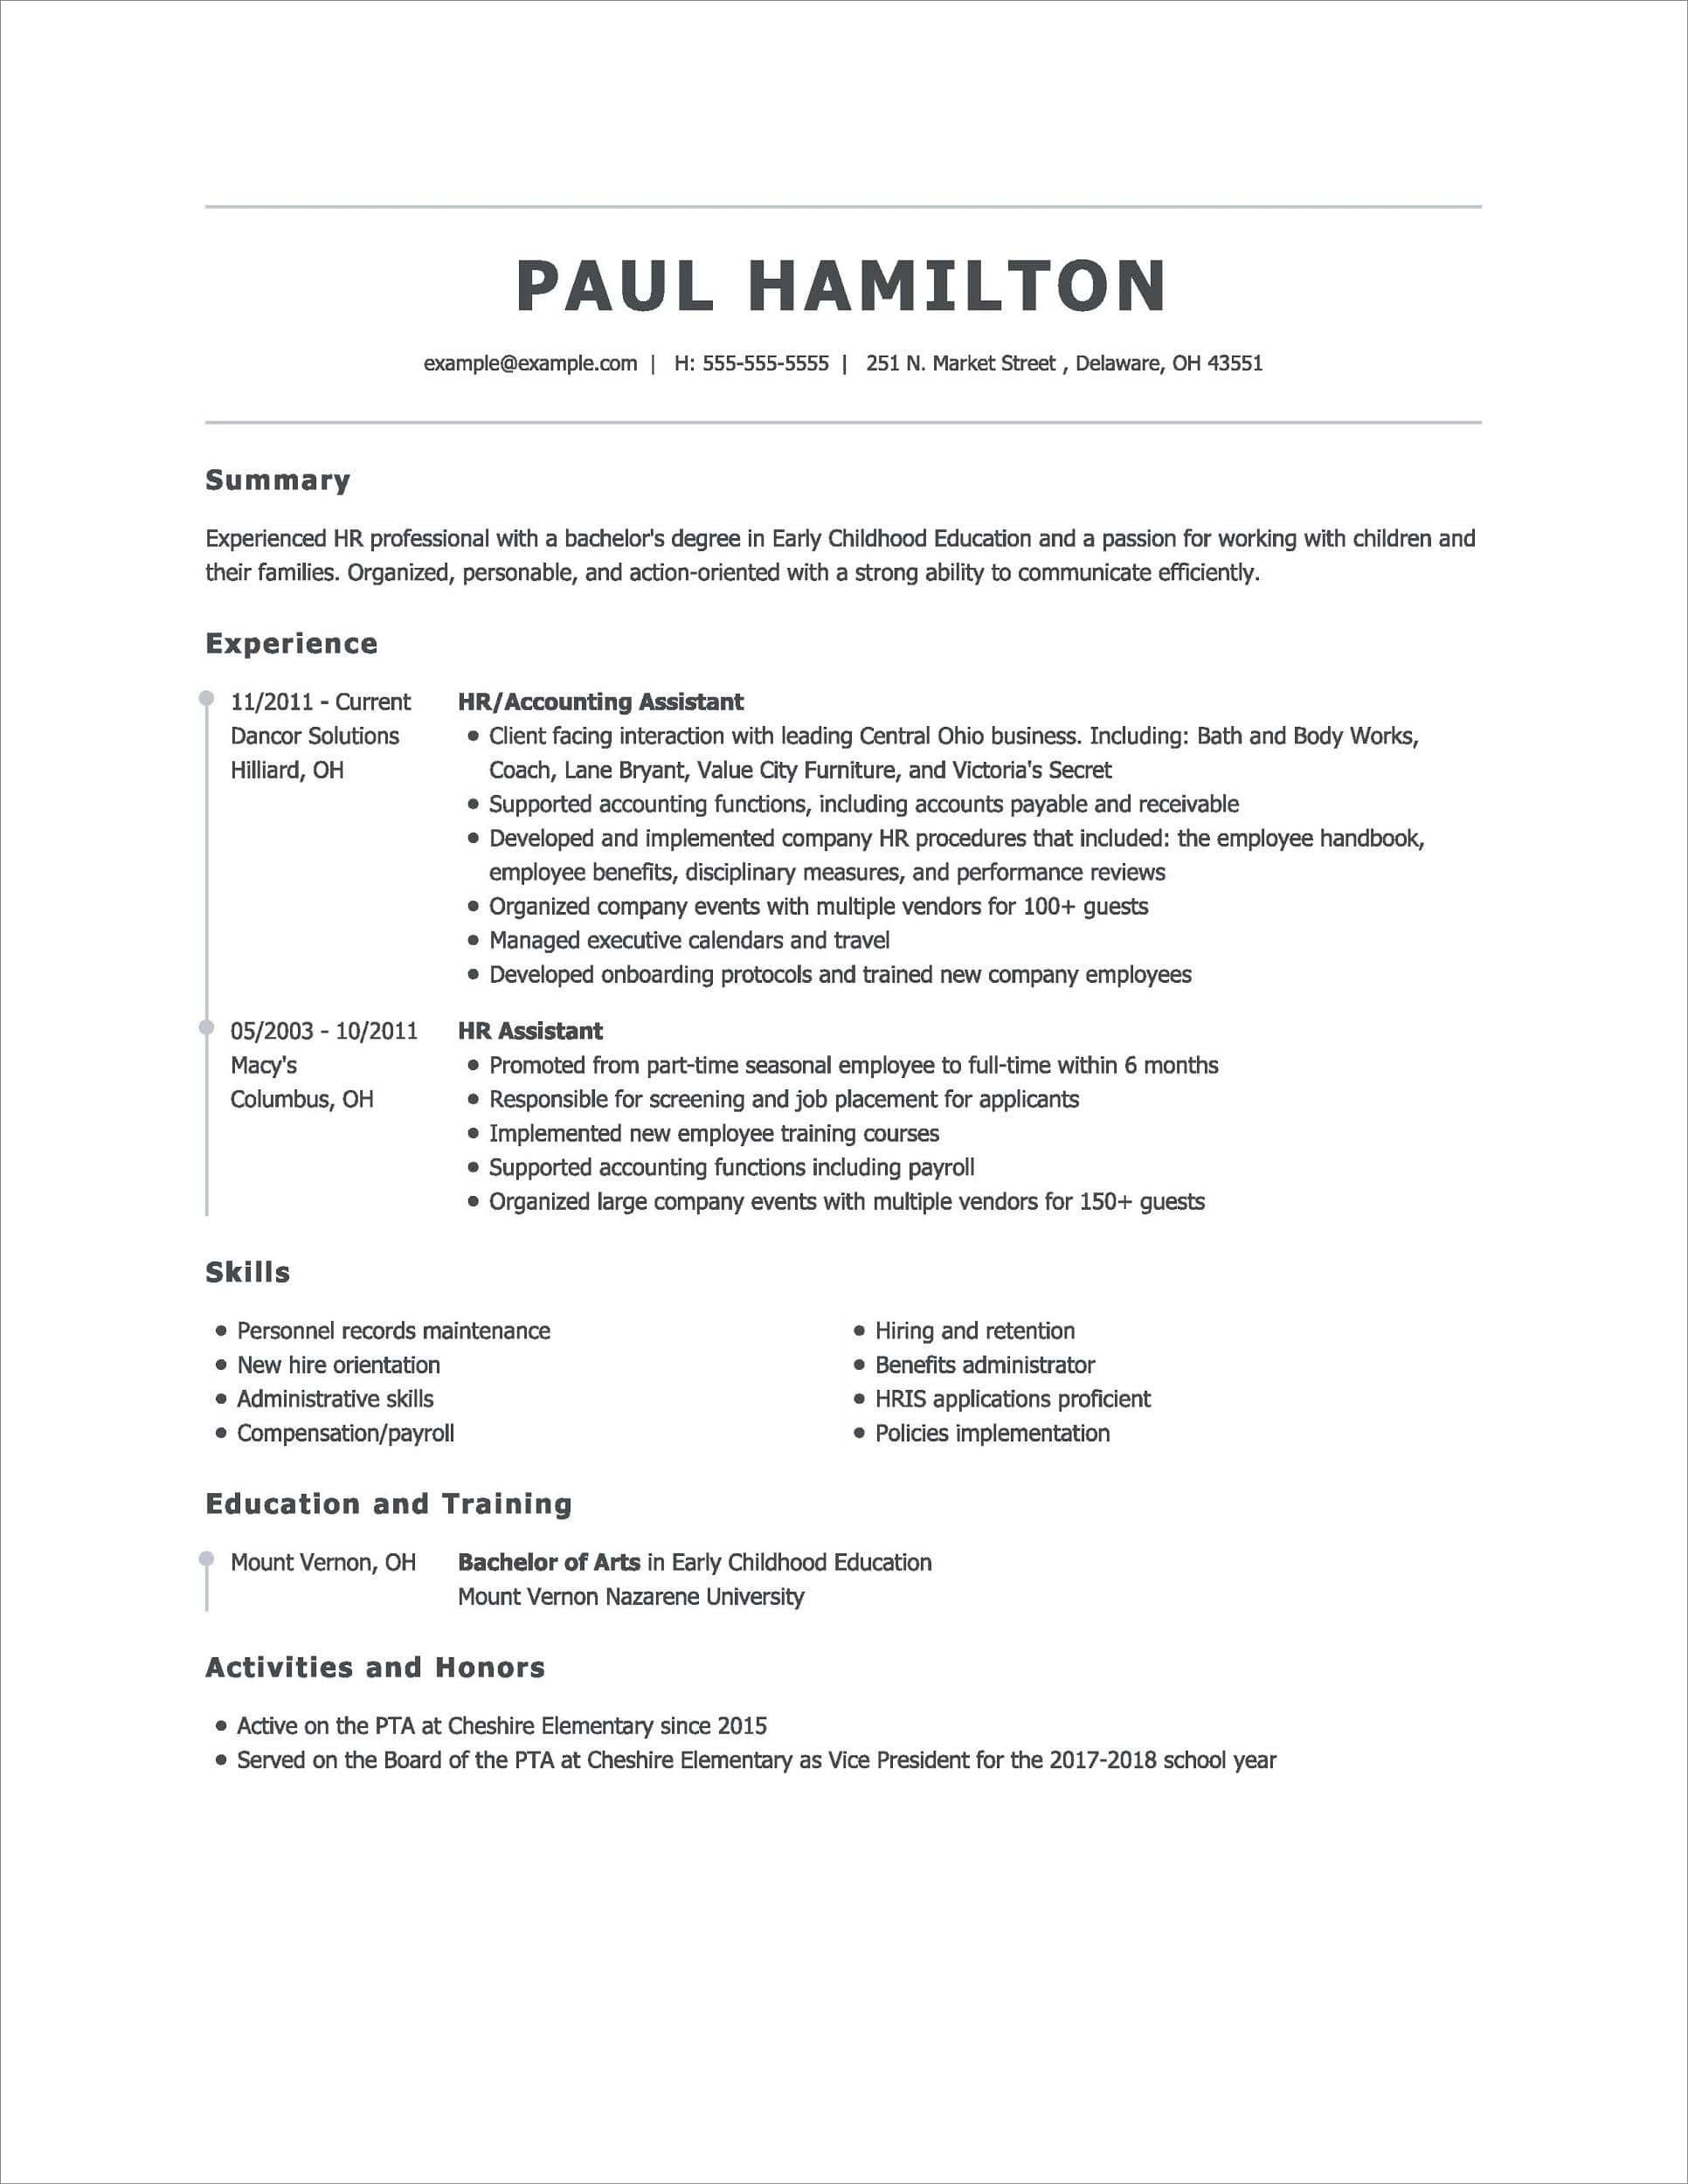 best resume builders free paid features to make fabrication fitter training synonym Resume Where To Make A Resume Online